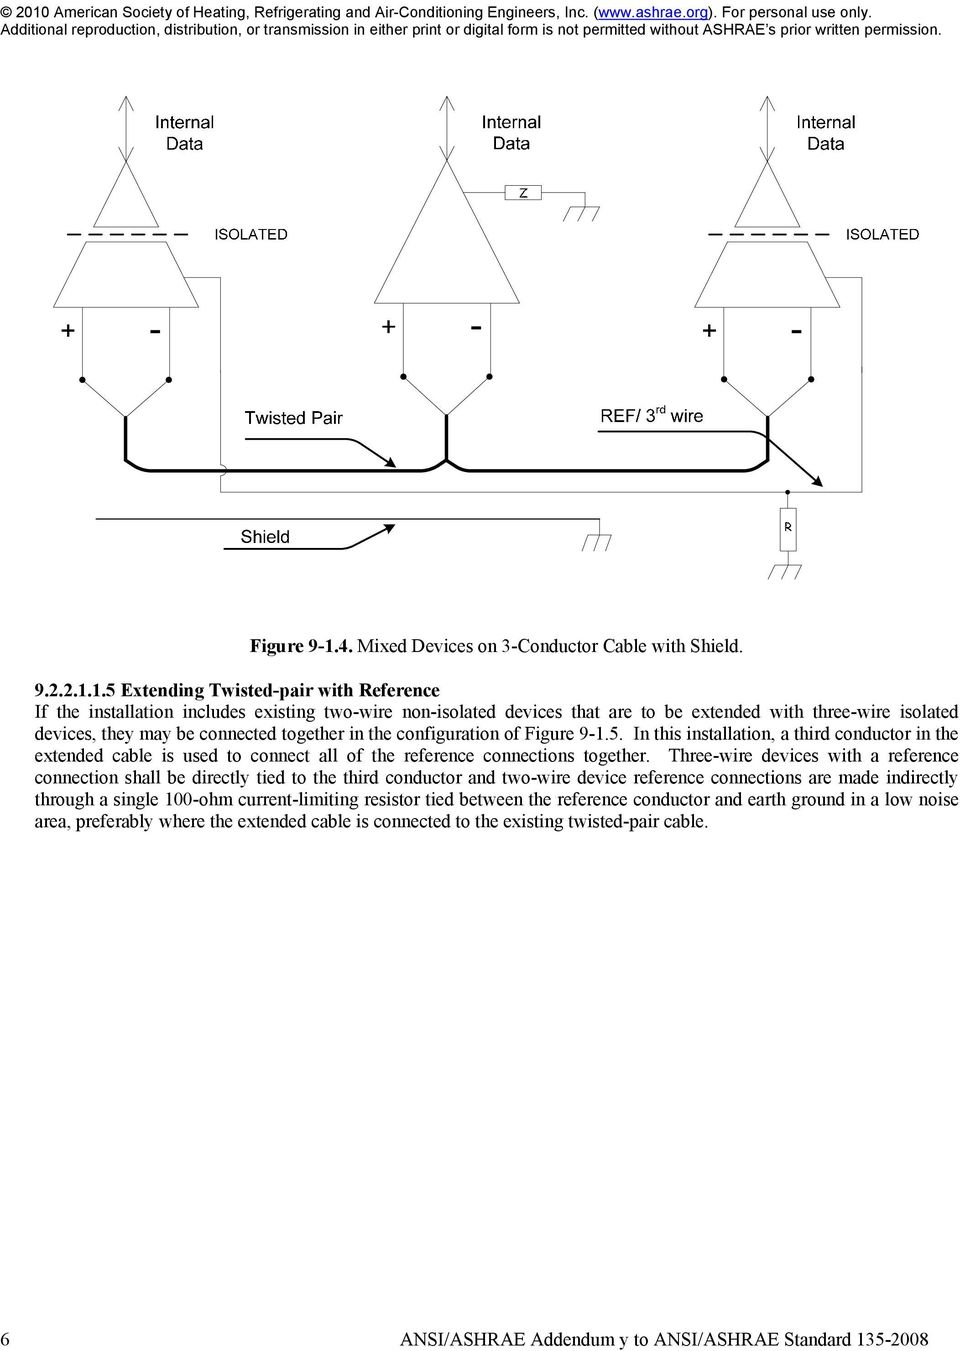 Ashrae Standard Bacnet A Data Communication Protocol For Building Cat5e Wiring Michael Diagram Reference 15 Extending Twisted Pair With If The Installation Includes Existing Two Wire Non